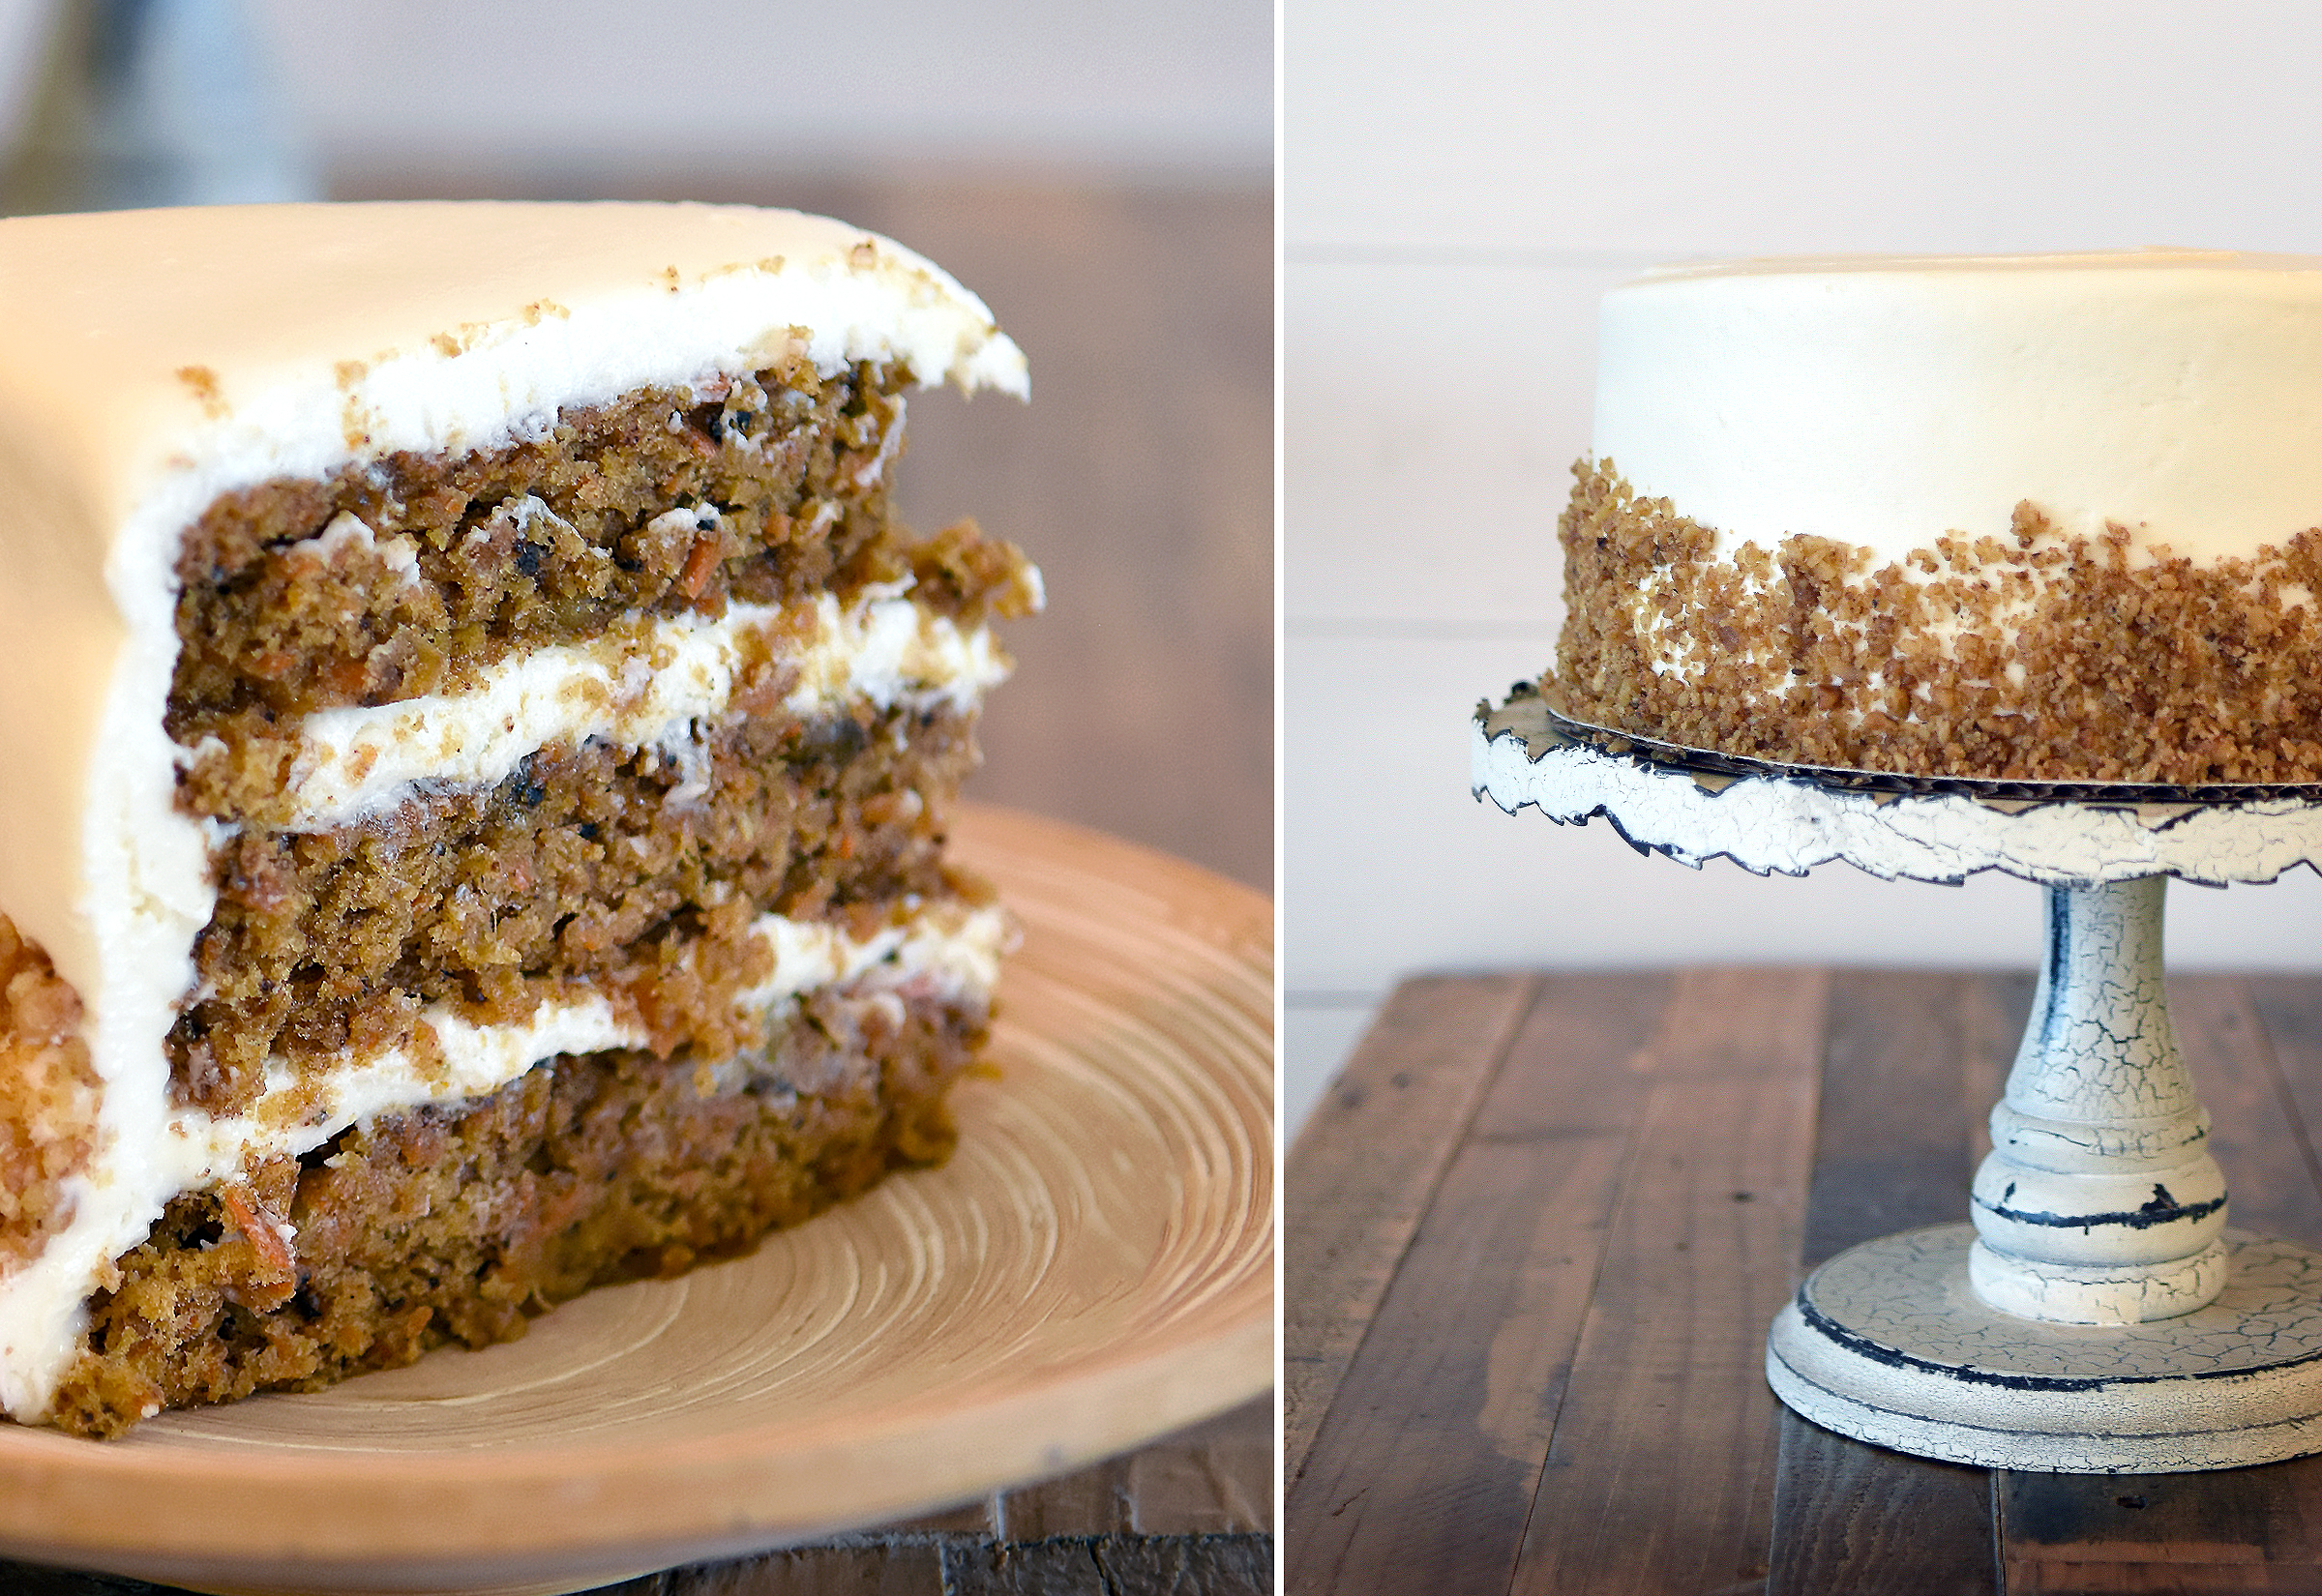 """18 Carat"" Cake   35 half / 60 whole  Made with grated organic flour and carrots, pineapple, walnuts & spice. Lightly coated in toasted crushed walnuts. Our favorite carrot cake – ever!"